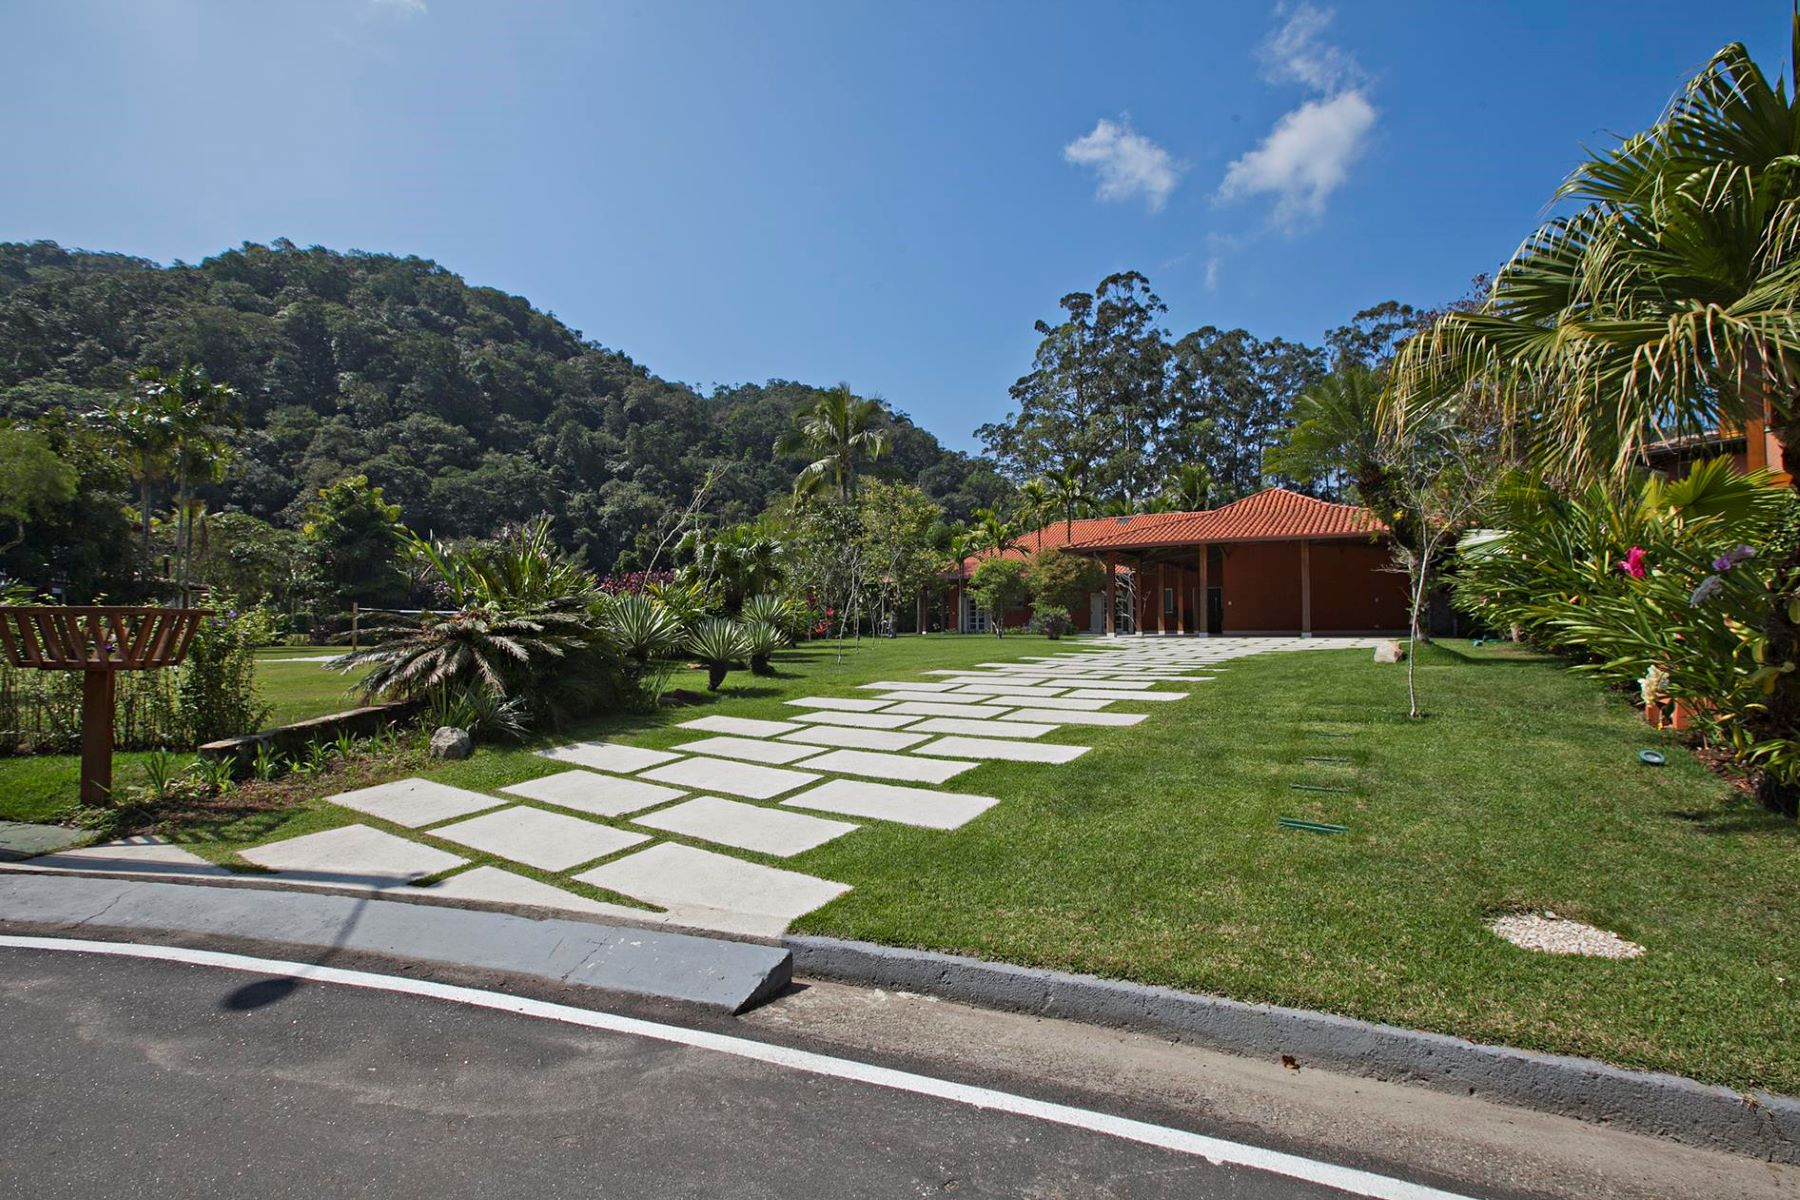 Single Family Home for Sale at Cozy House at a Great Site Paraty, Rio De Janeiro, Brazil